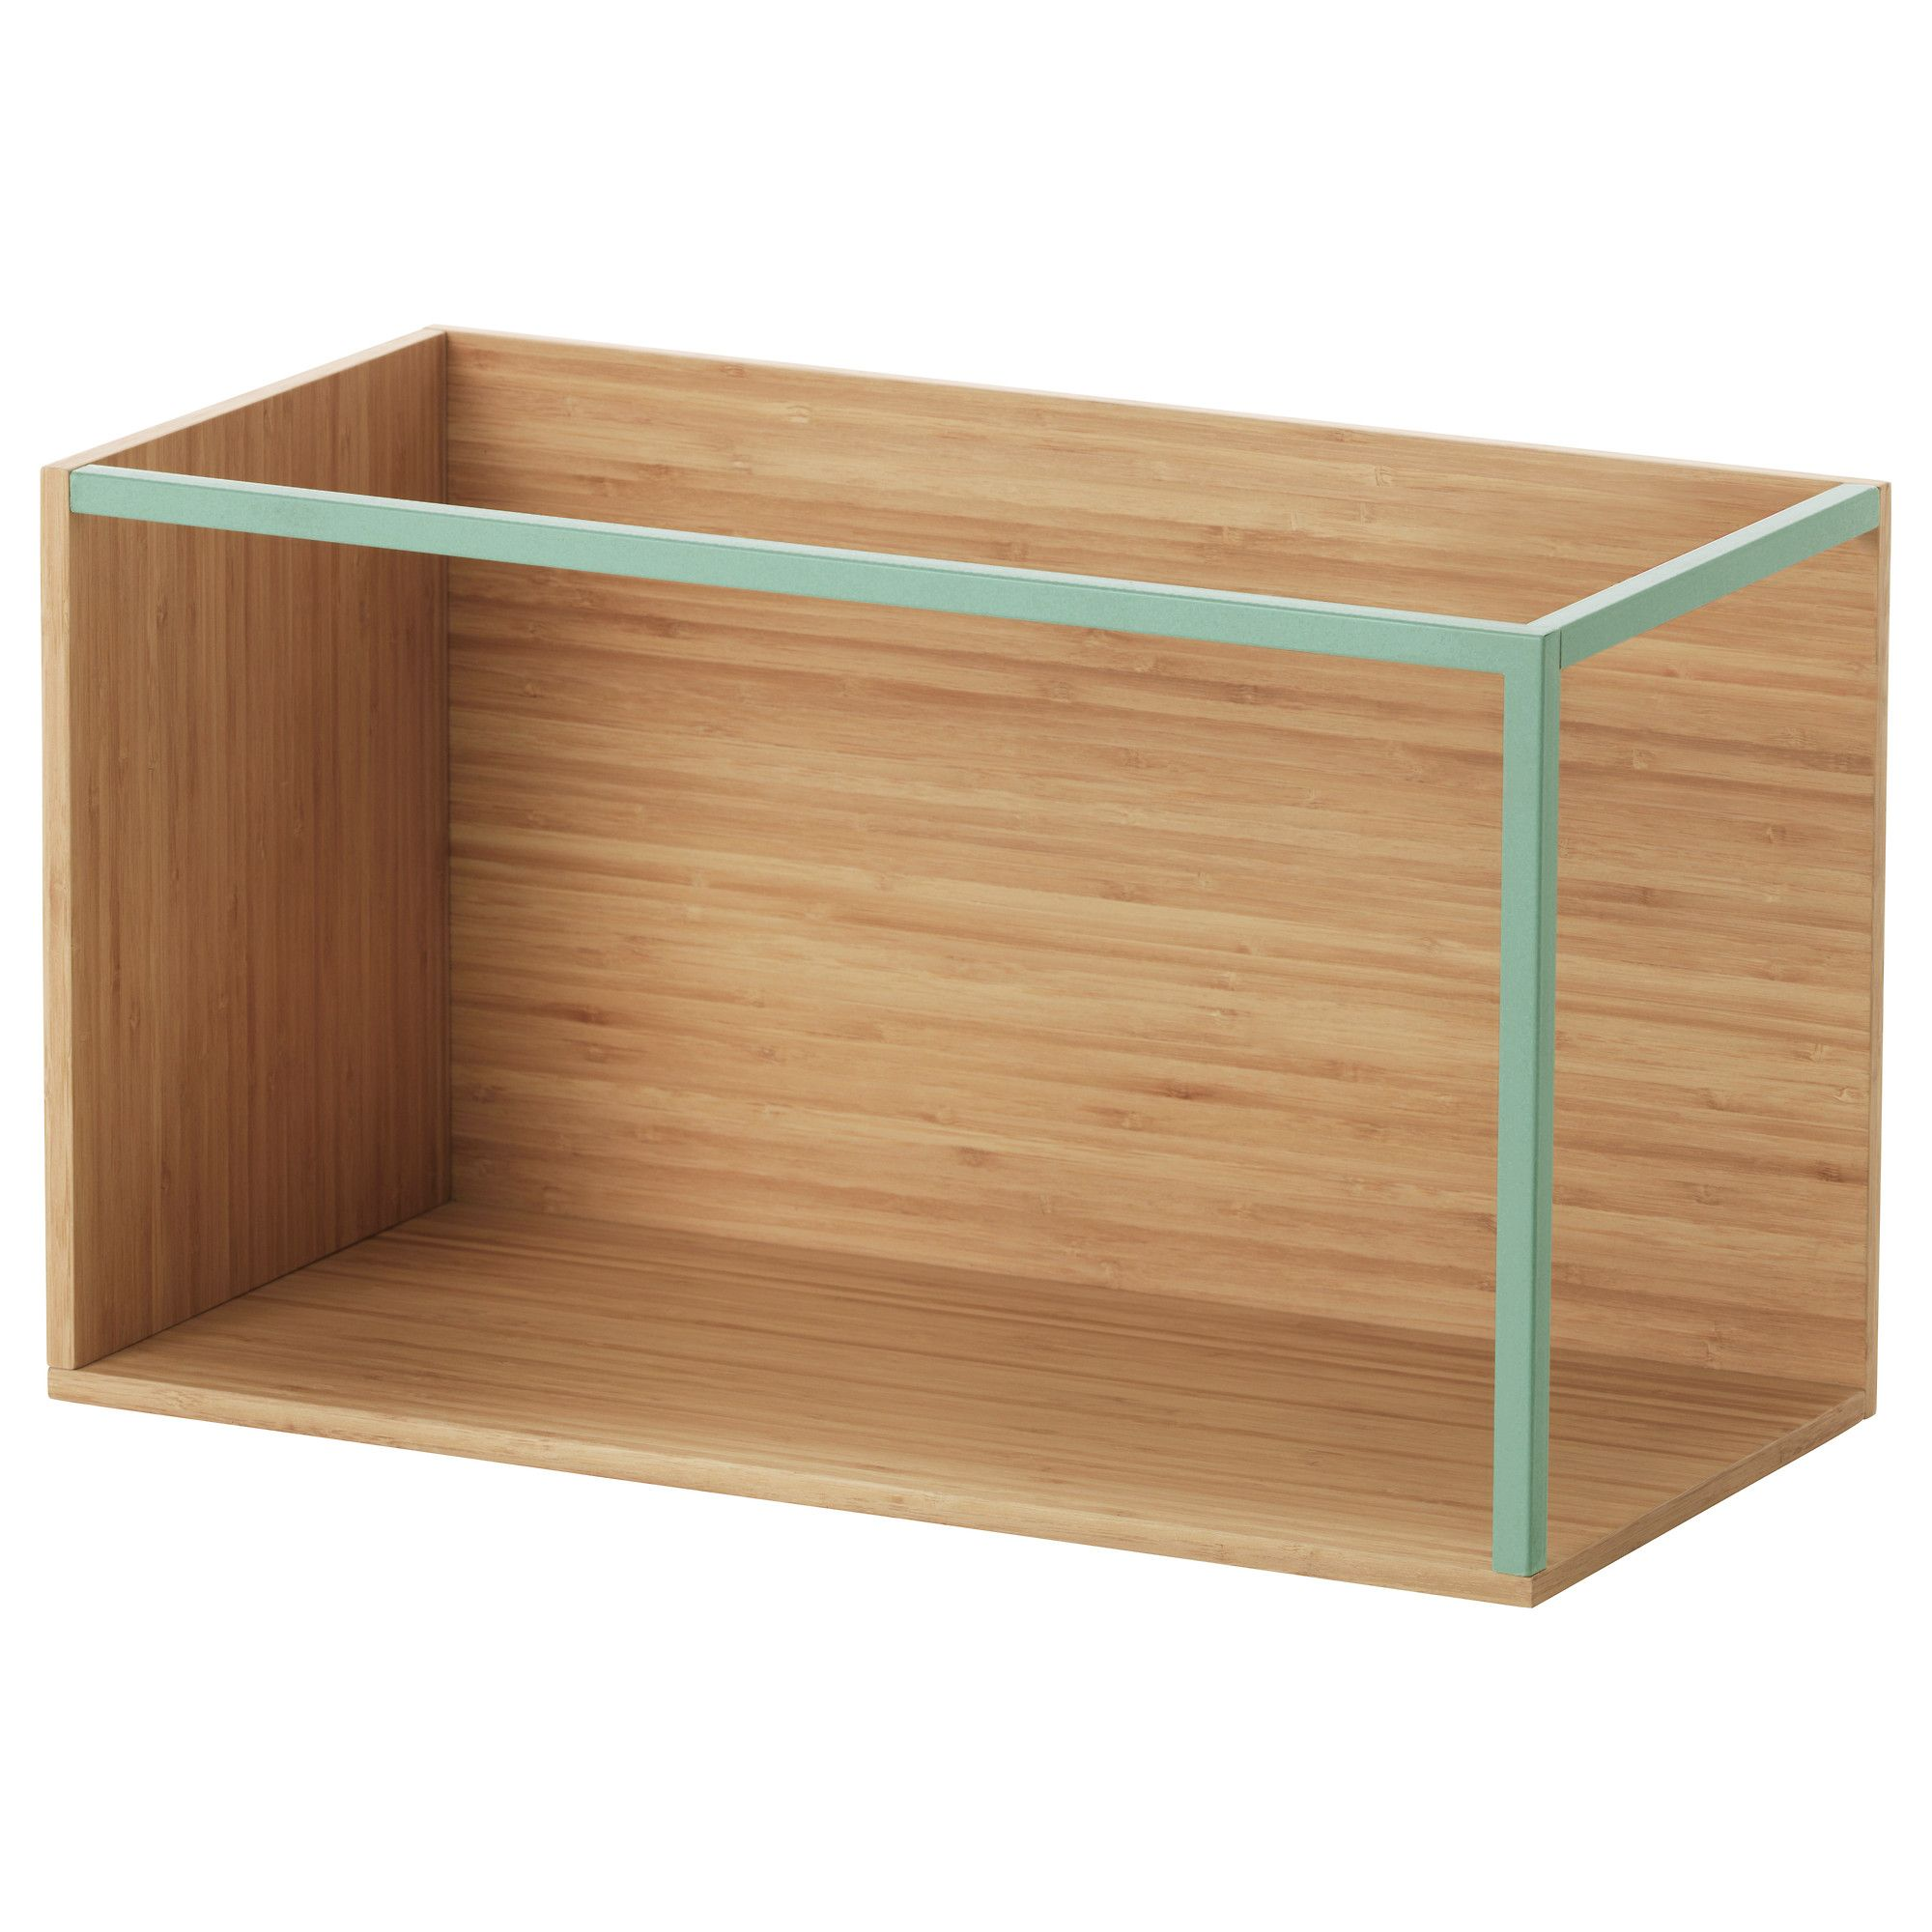 ikea ps 2014 storage module bamboo light green ikea. Black Bedroom Furniture Sets. Home Design Ideas